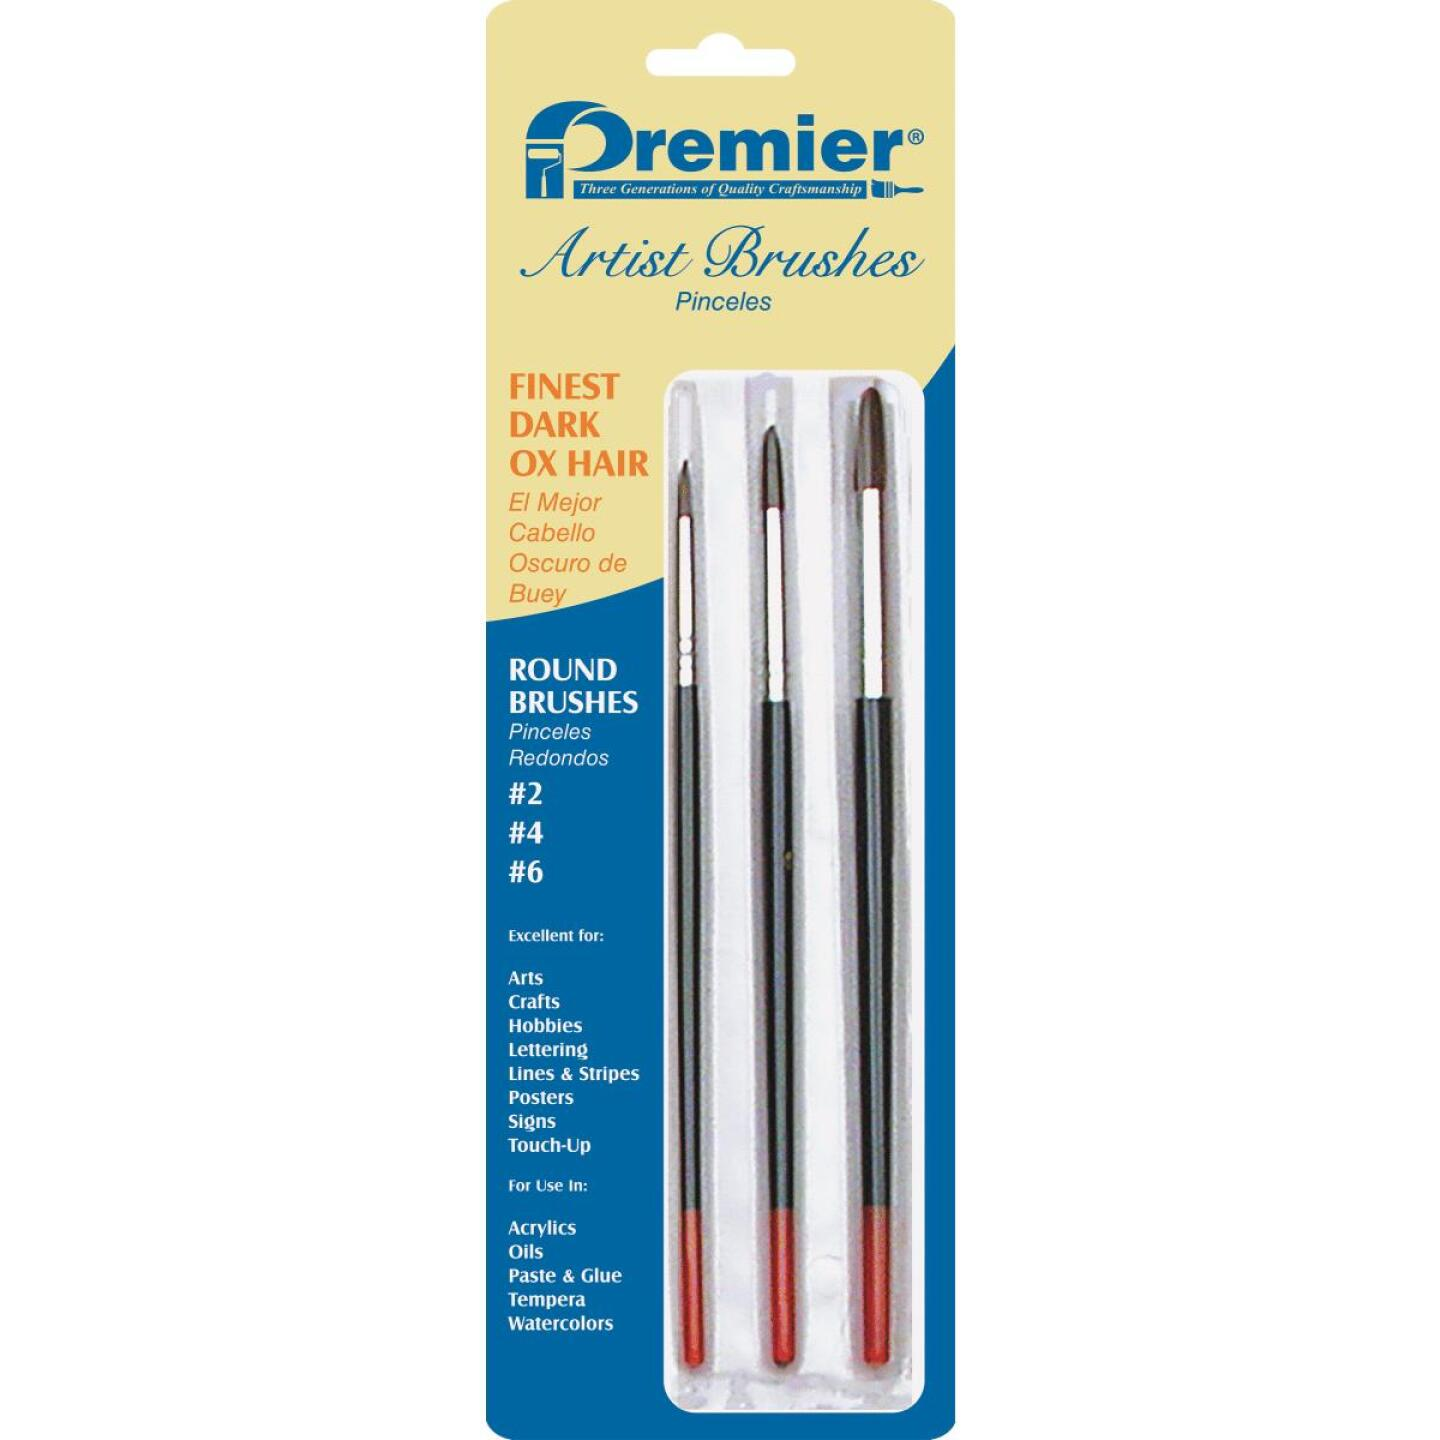 Premier Z-Pro Assorted Dark Ox Hair Round Artist Brushes (3 Pieces) Image 1